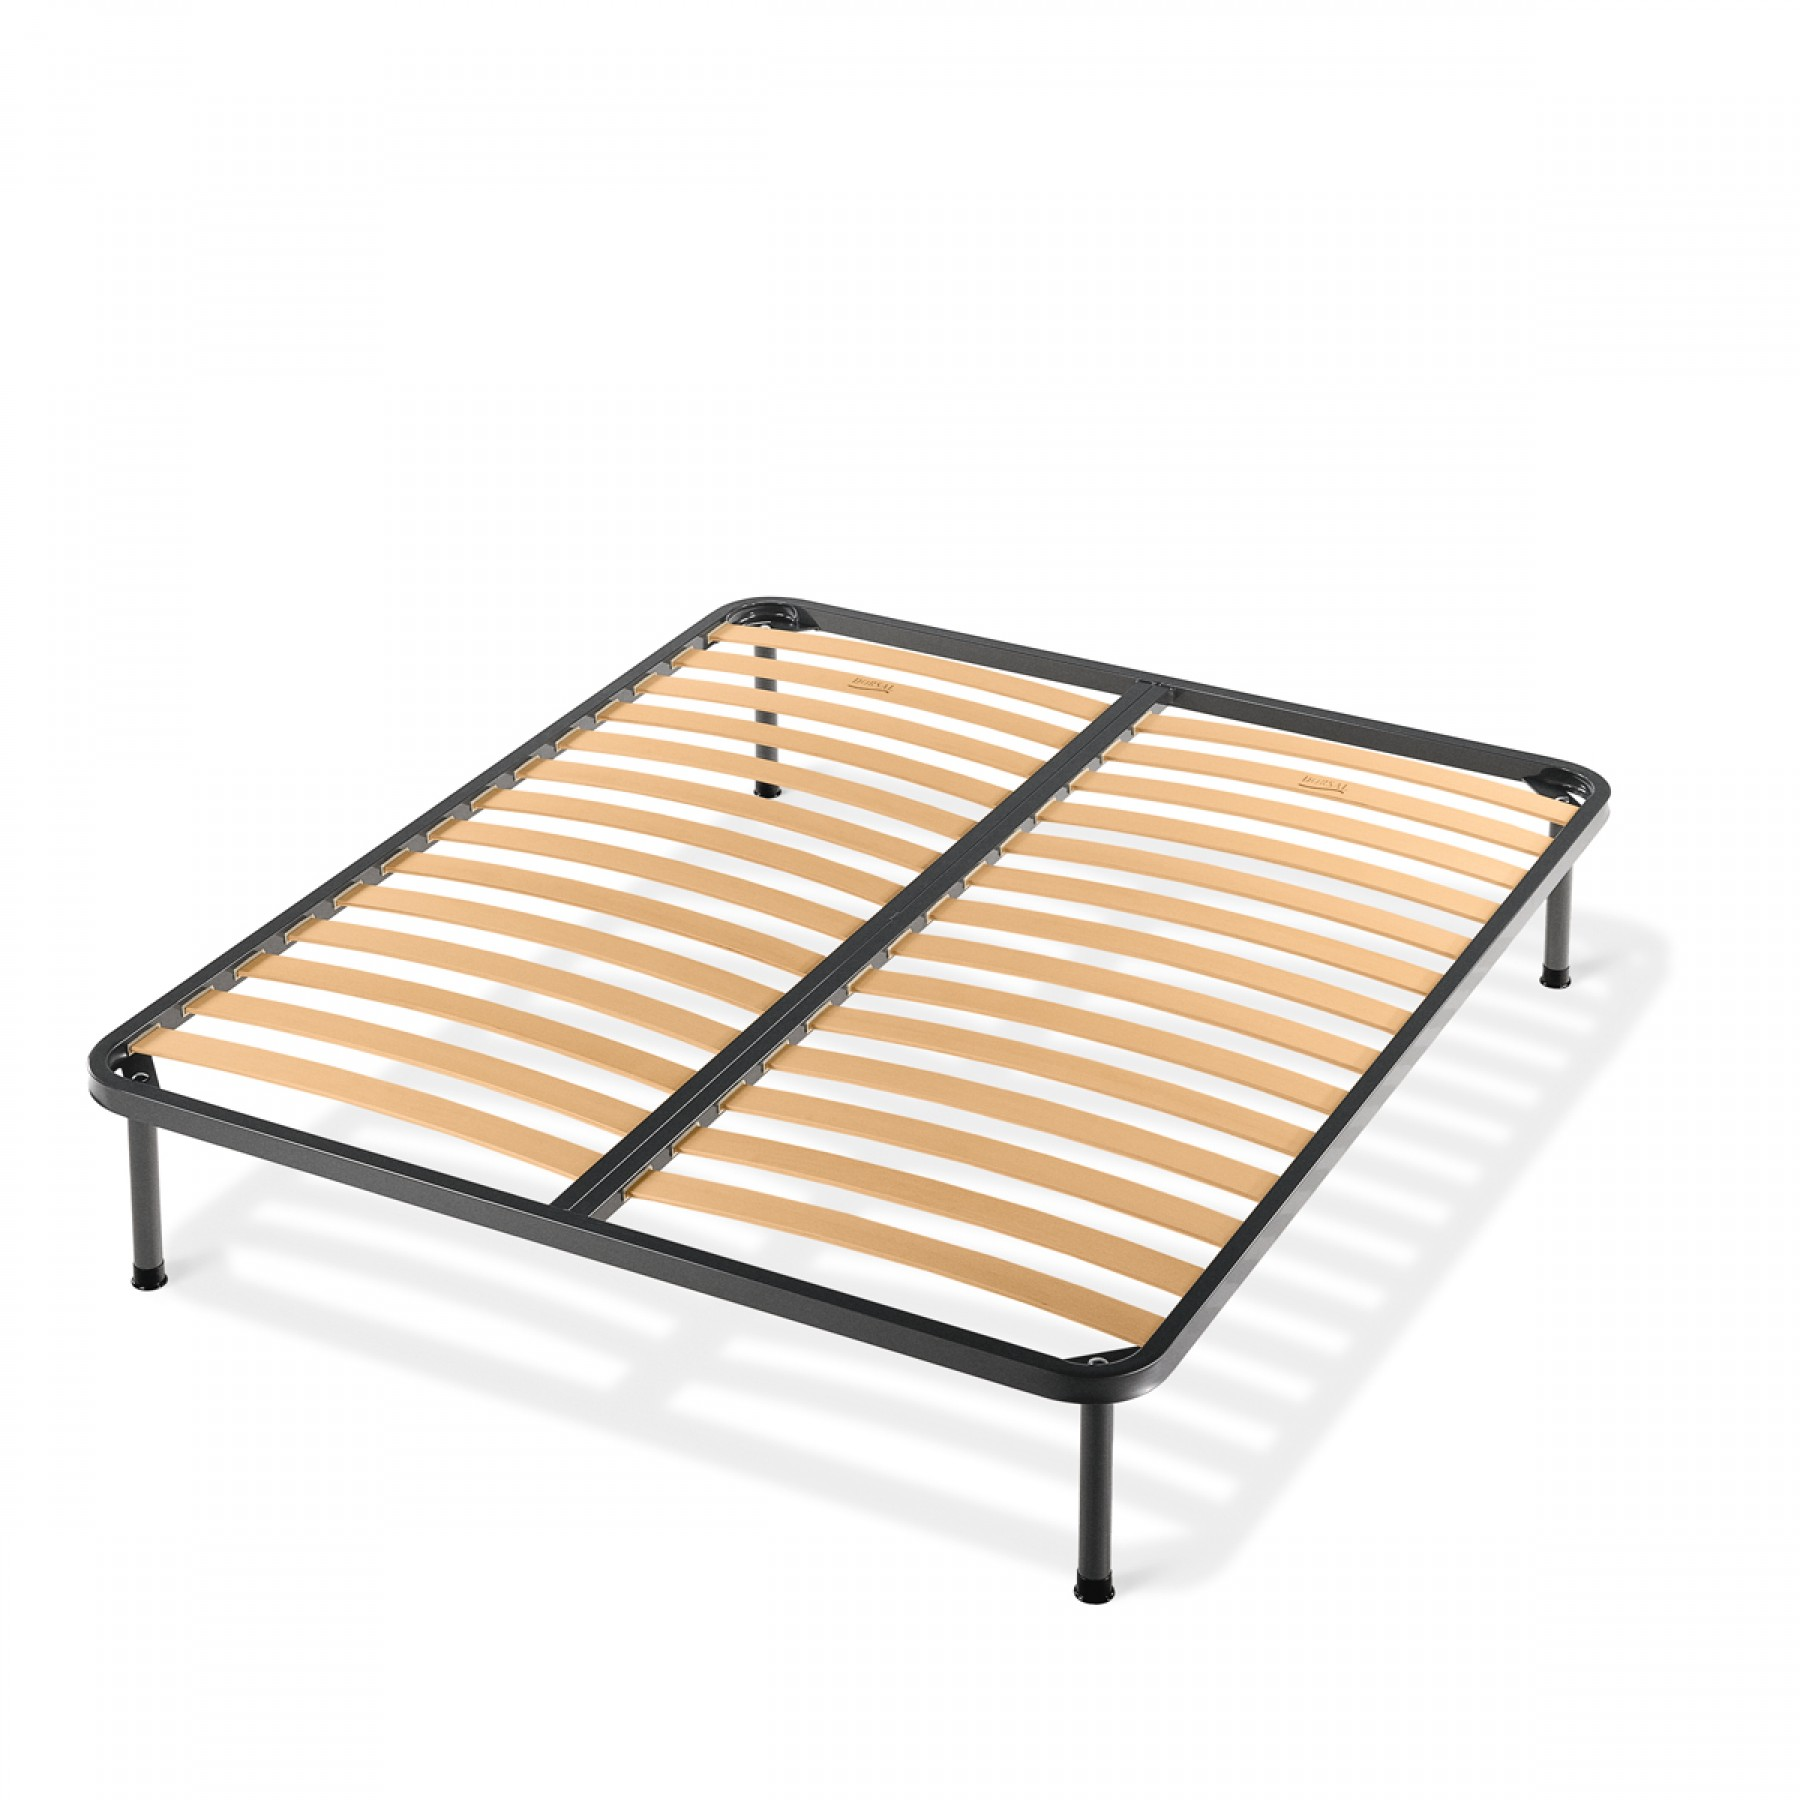 Italian varial slat base beyond furniture for Italian wall bed system